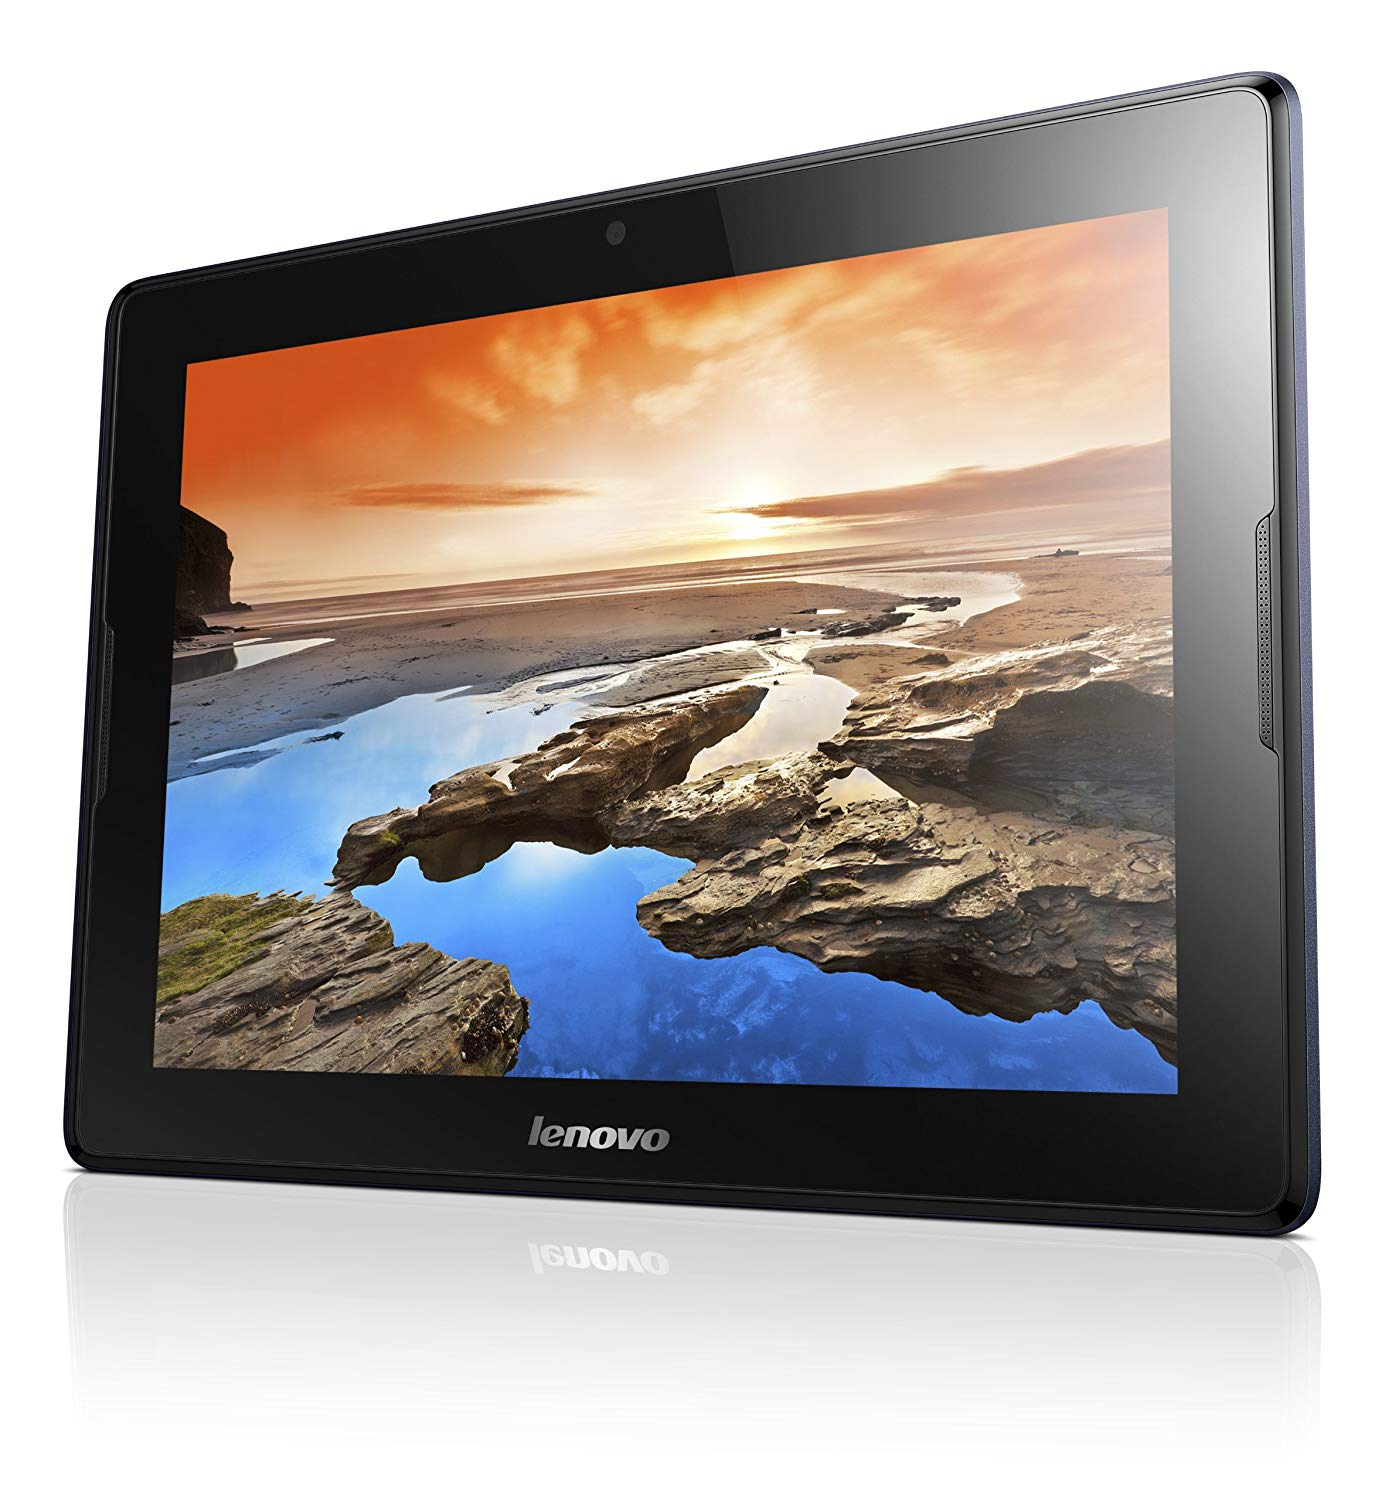 lenovo tab inch tablet accent tablette fast midnight blue computers accessories rattan cooler table tray top folding garden furniture oak pier imports dining living room outdoor